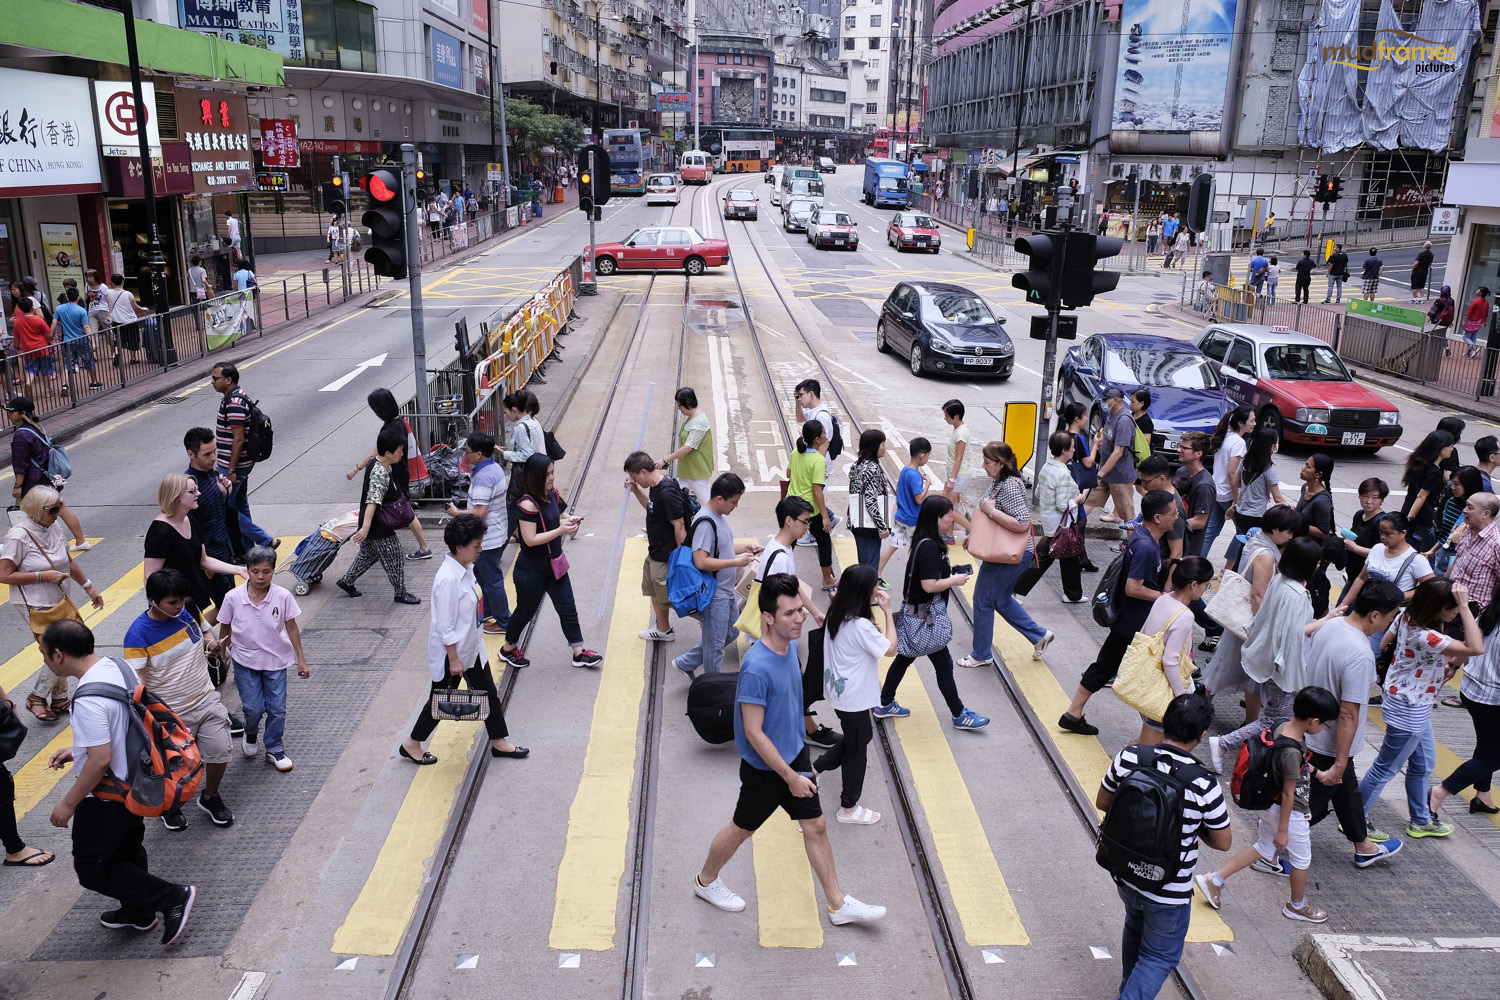 People crossing busy street at Hong Kong